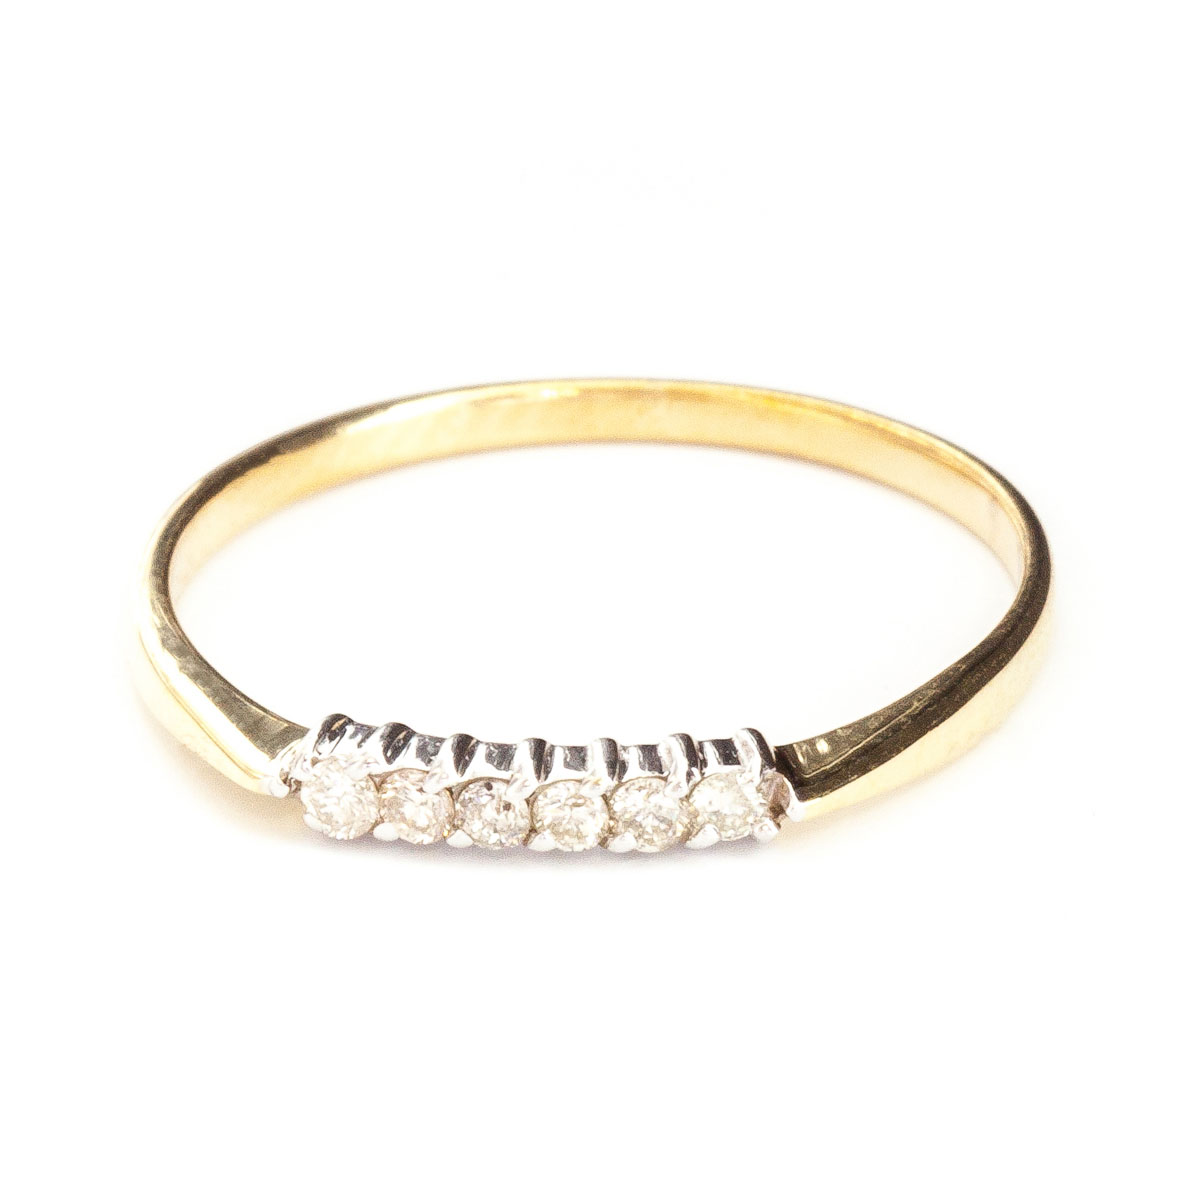 Round Cut Diamond Ring 0.1 ctw in 18ct Gold